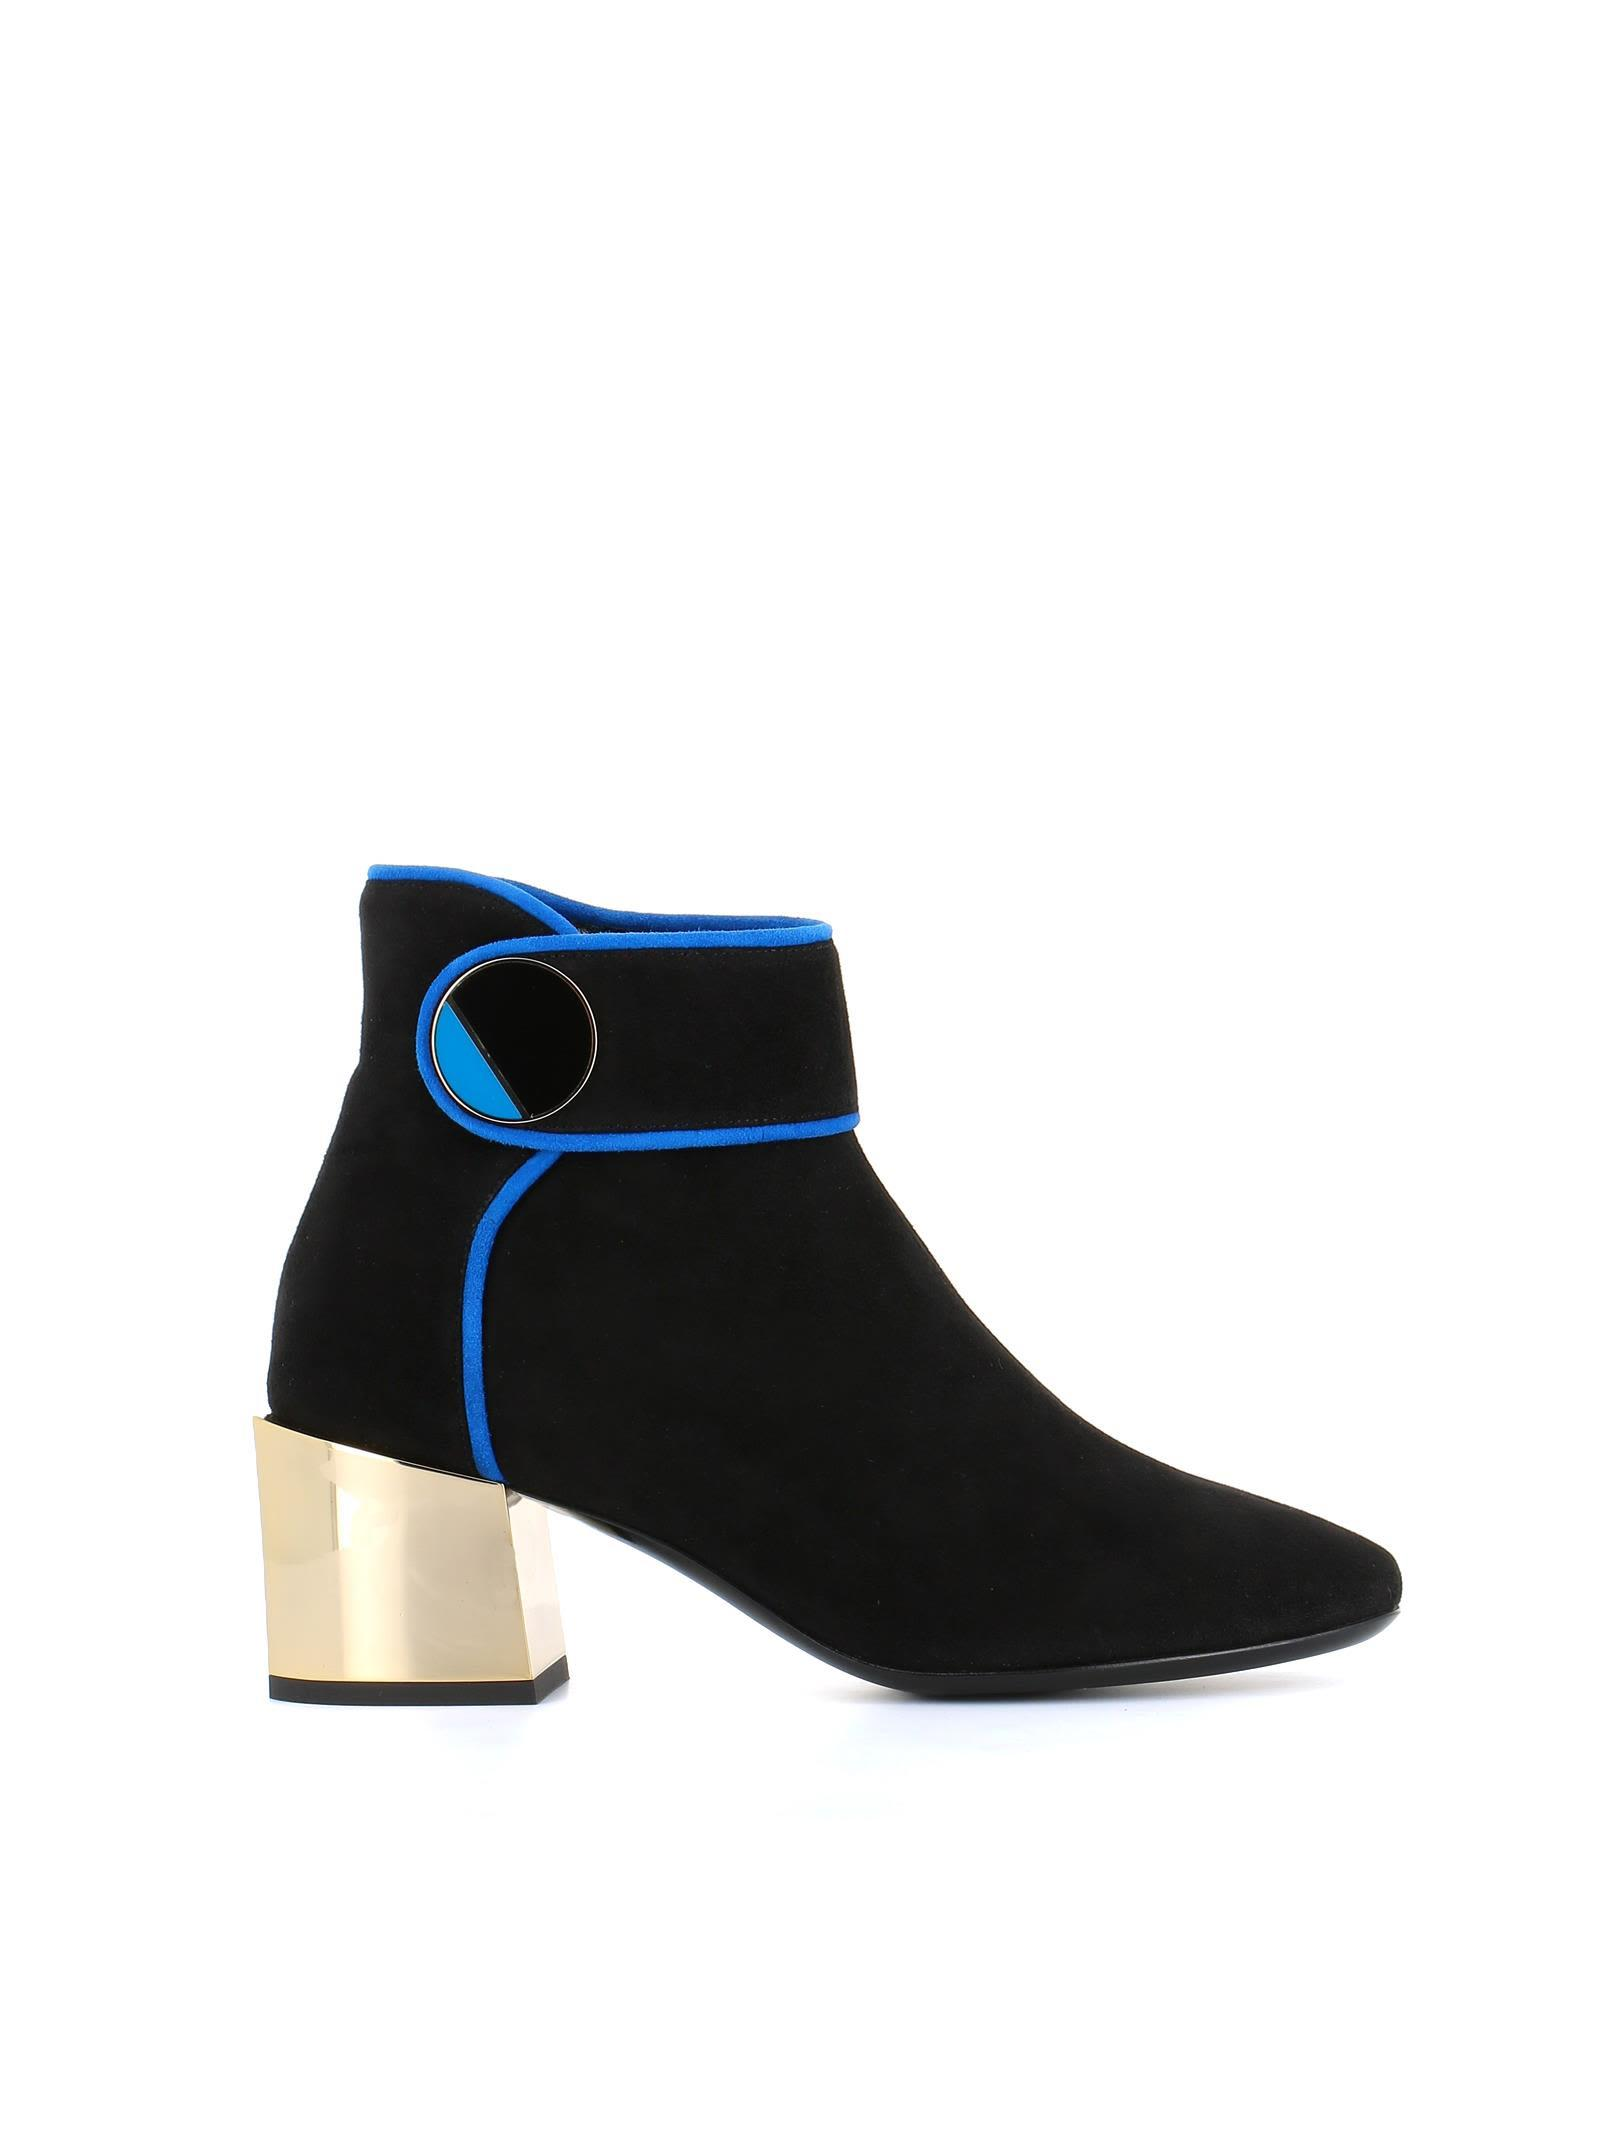 Lanvin Ankle Boots In Black